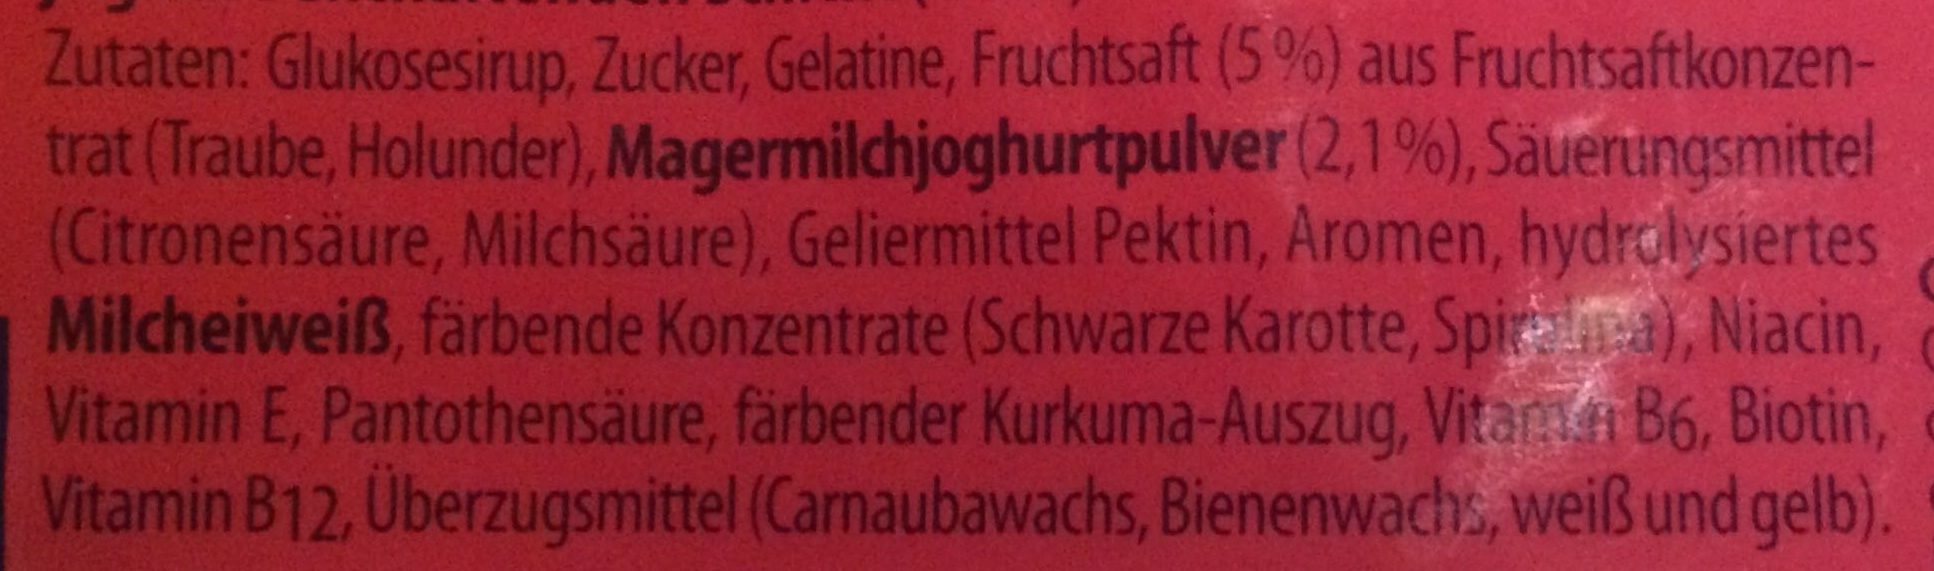 Lachgummi Frucht&Joghurt - Ingredients